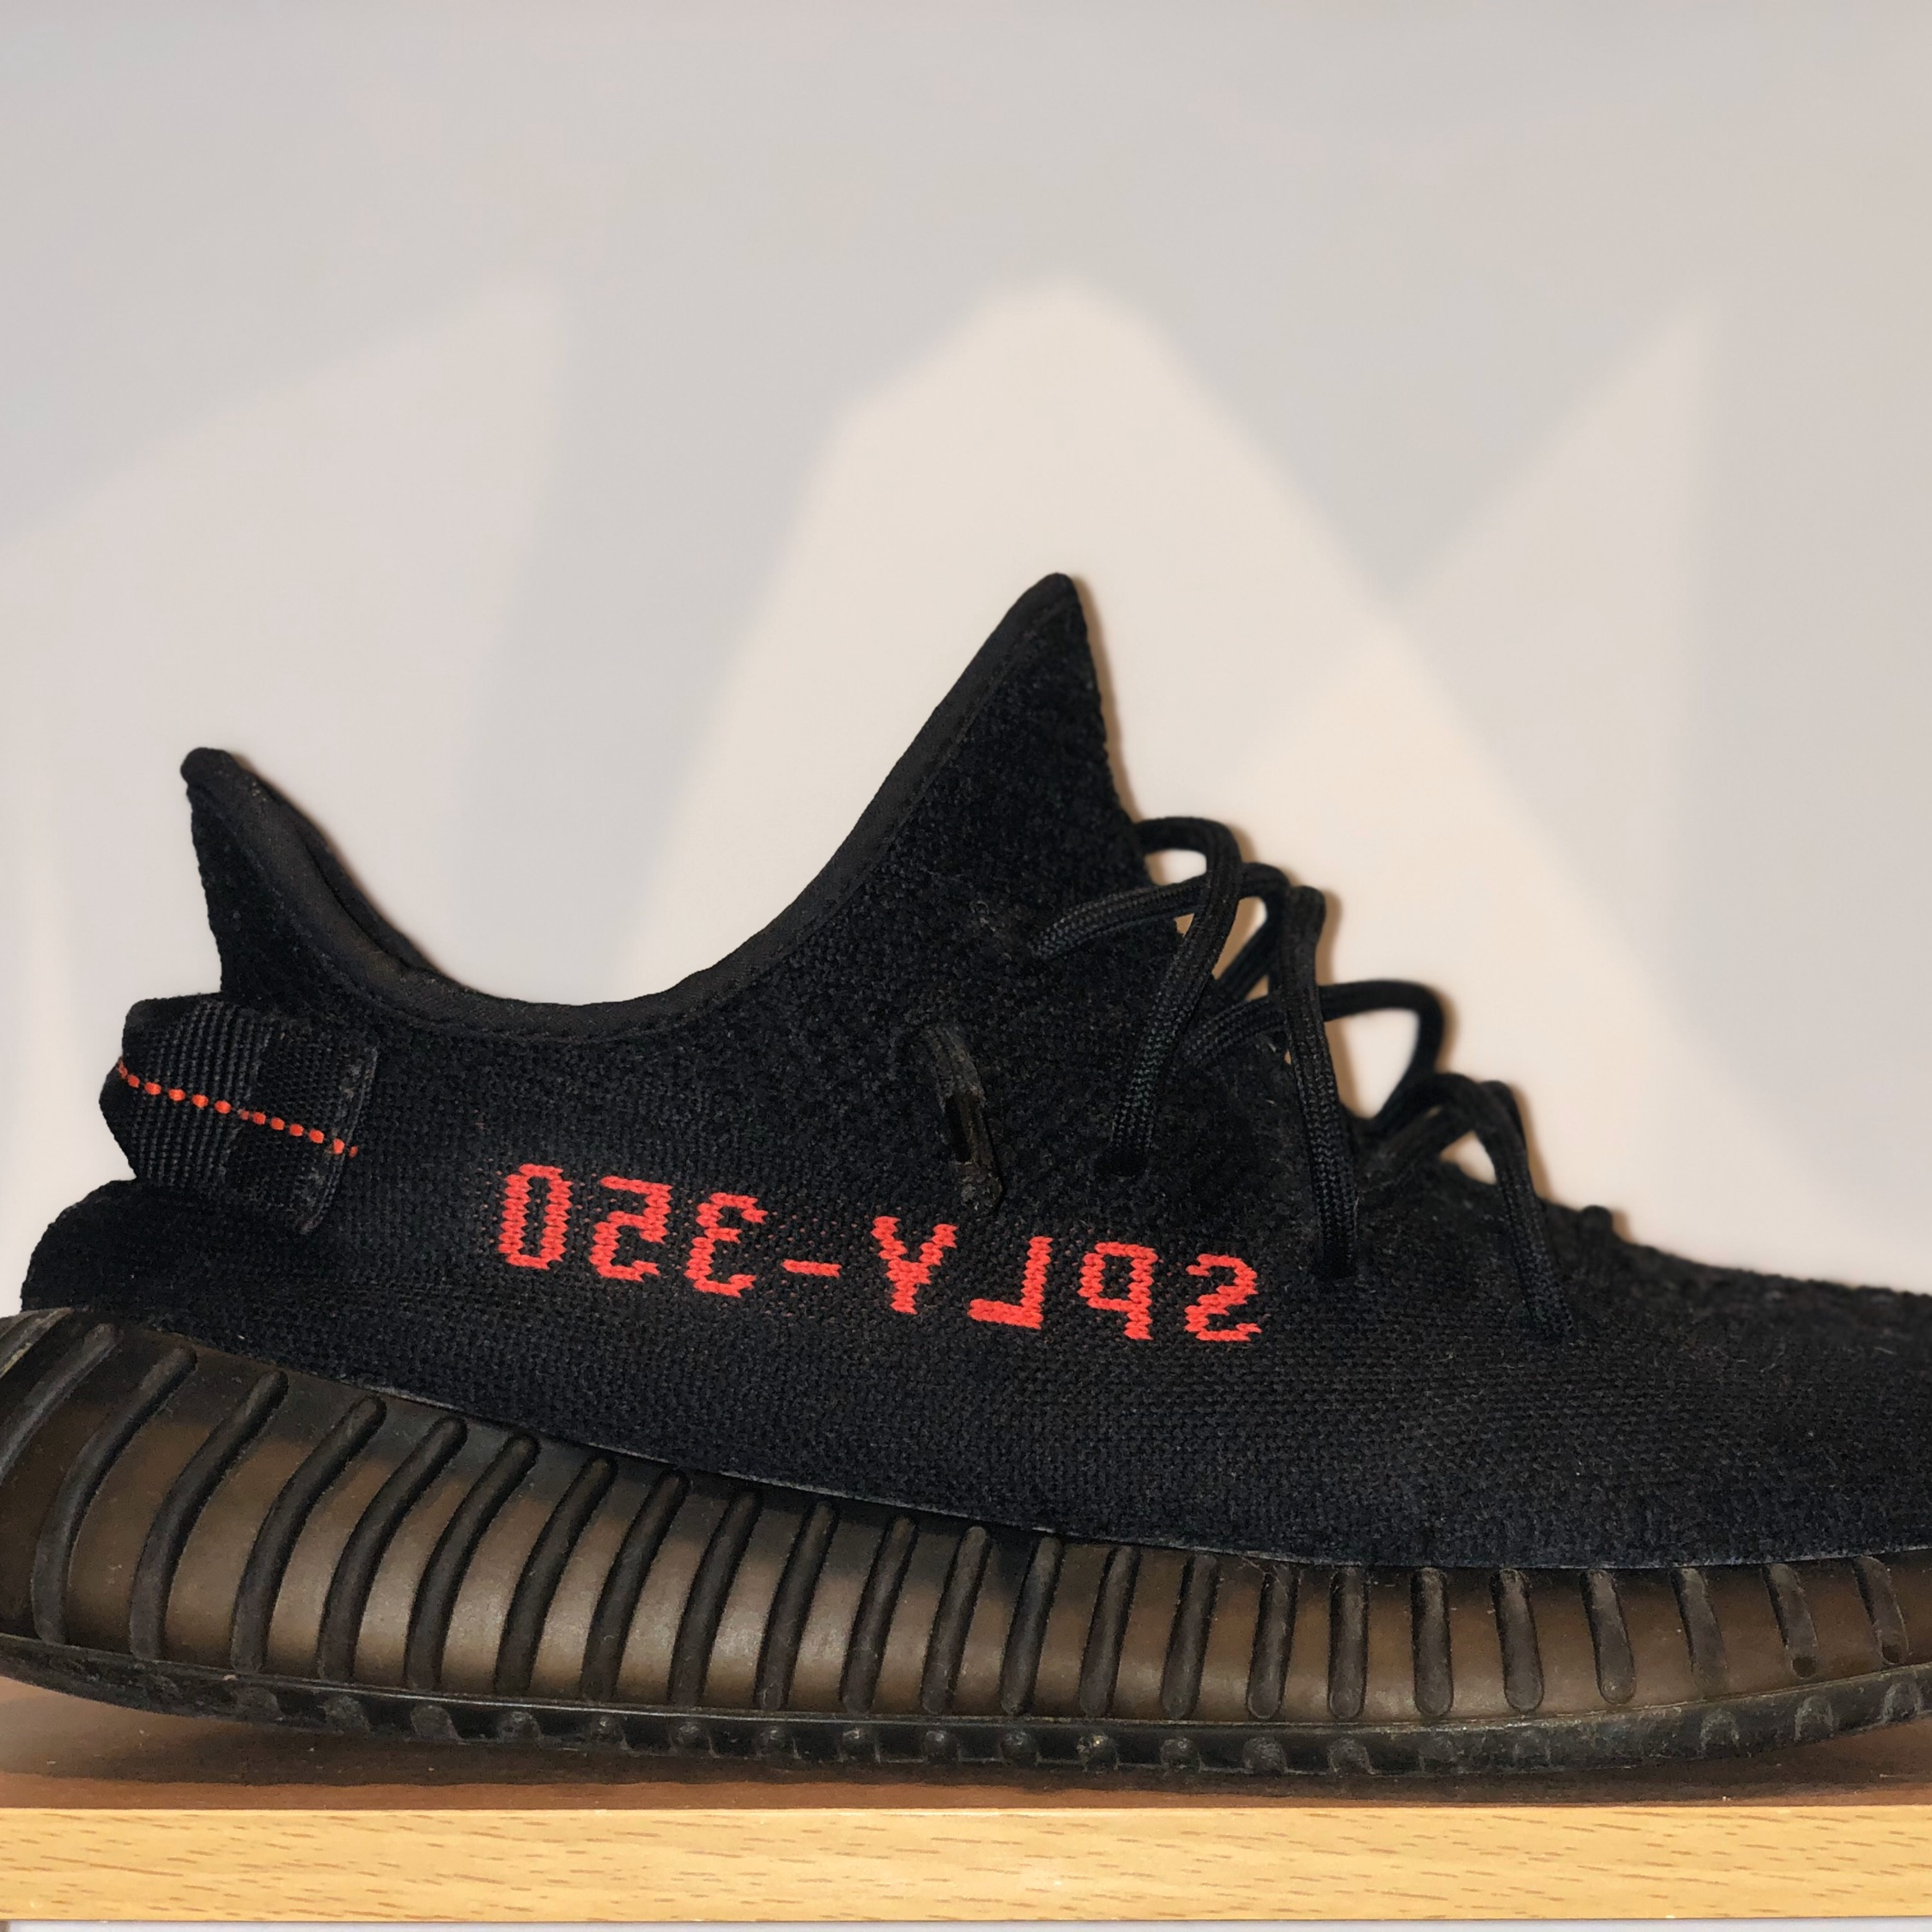 yeezy boost 350 bred prix reduced 6c5ac